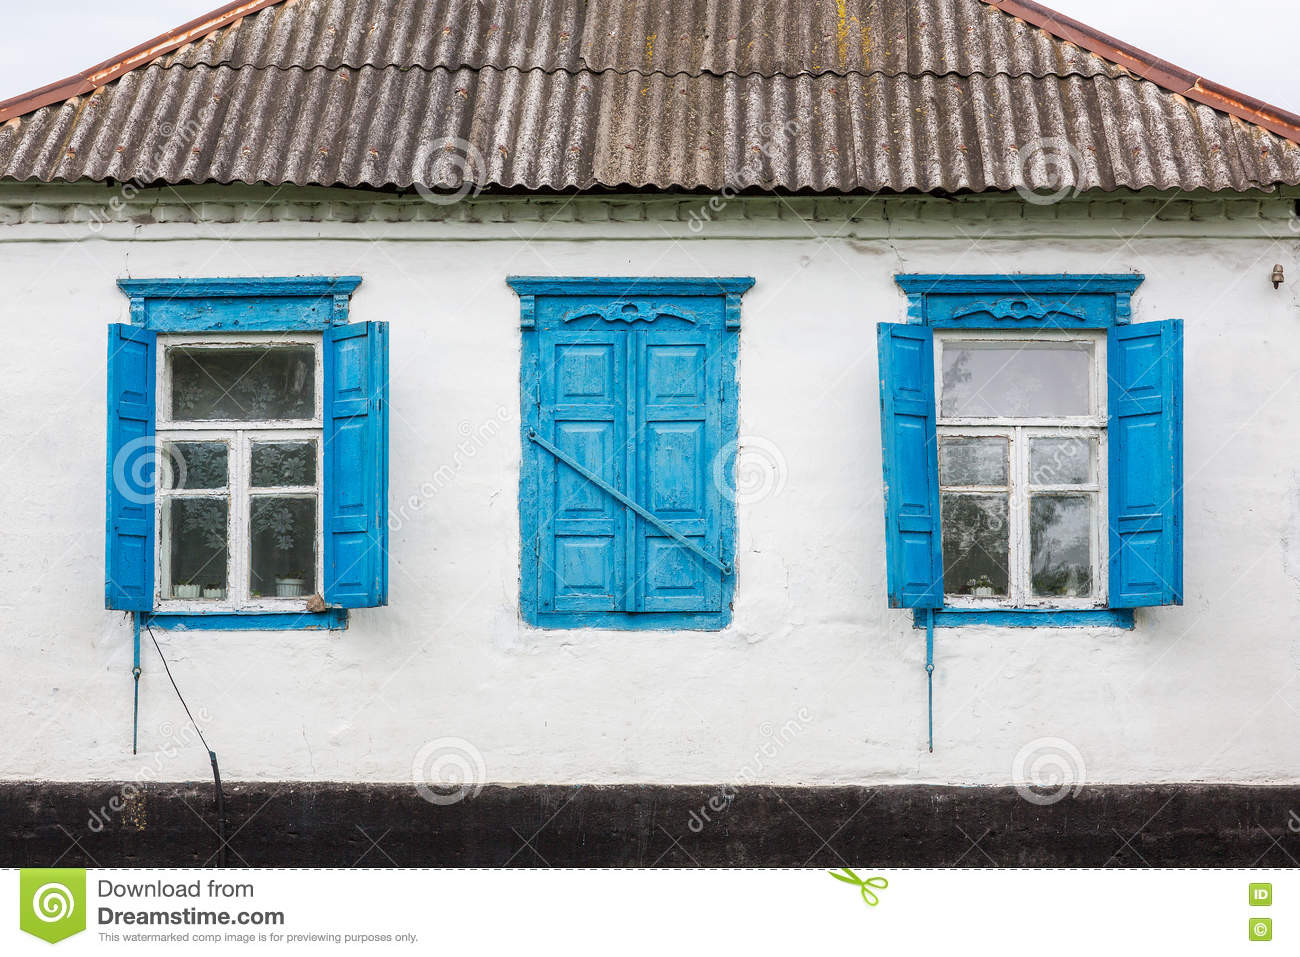 Faсade old hous with windows.